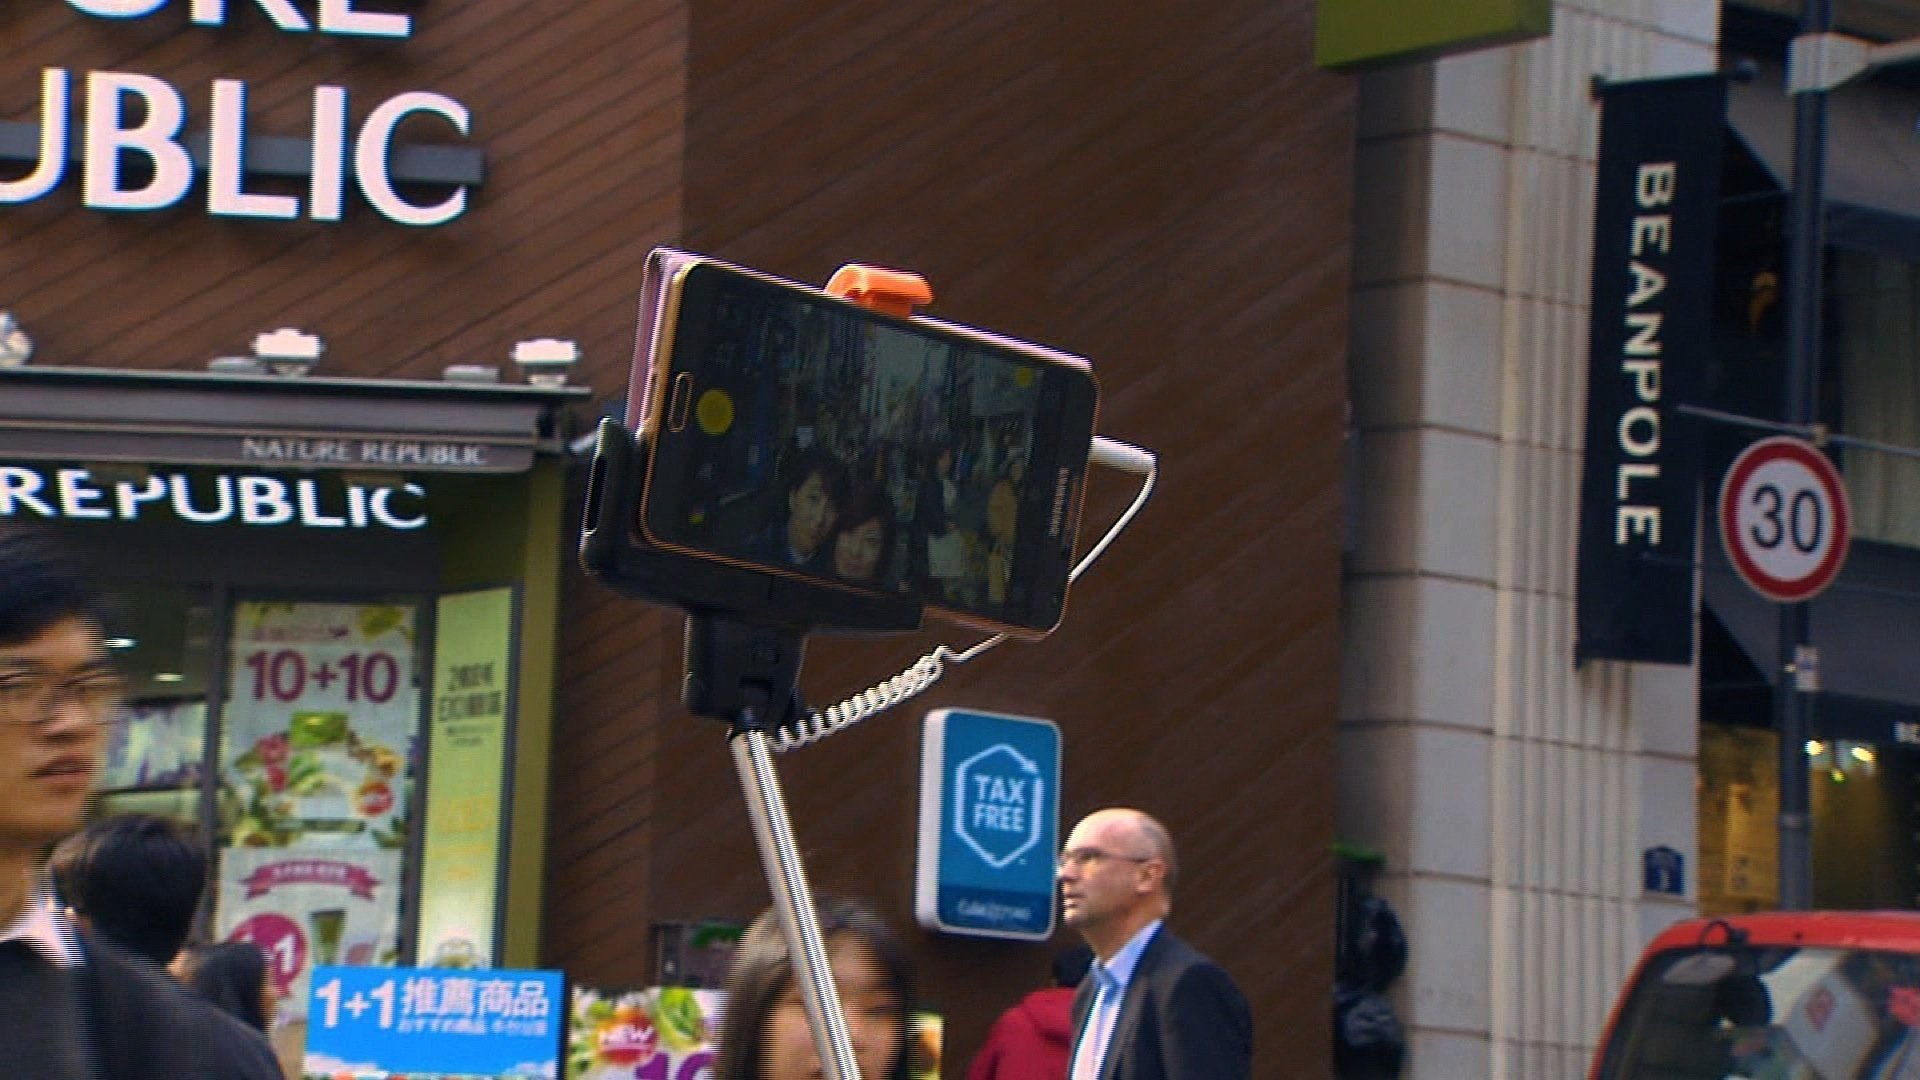 (Credit: CNN) A couple in Hong Kong uses a selfie stick, a long pole used to extend their camera phone more than three feet away allowing a wide frame for the photograph.